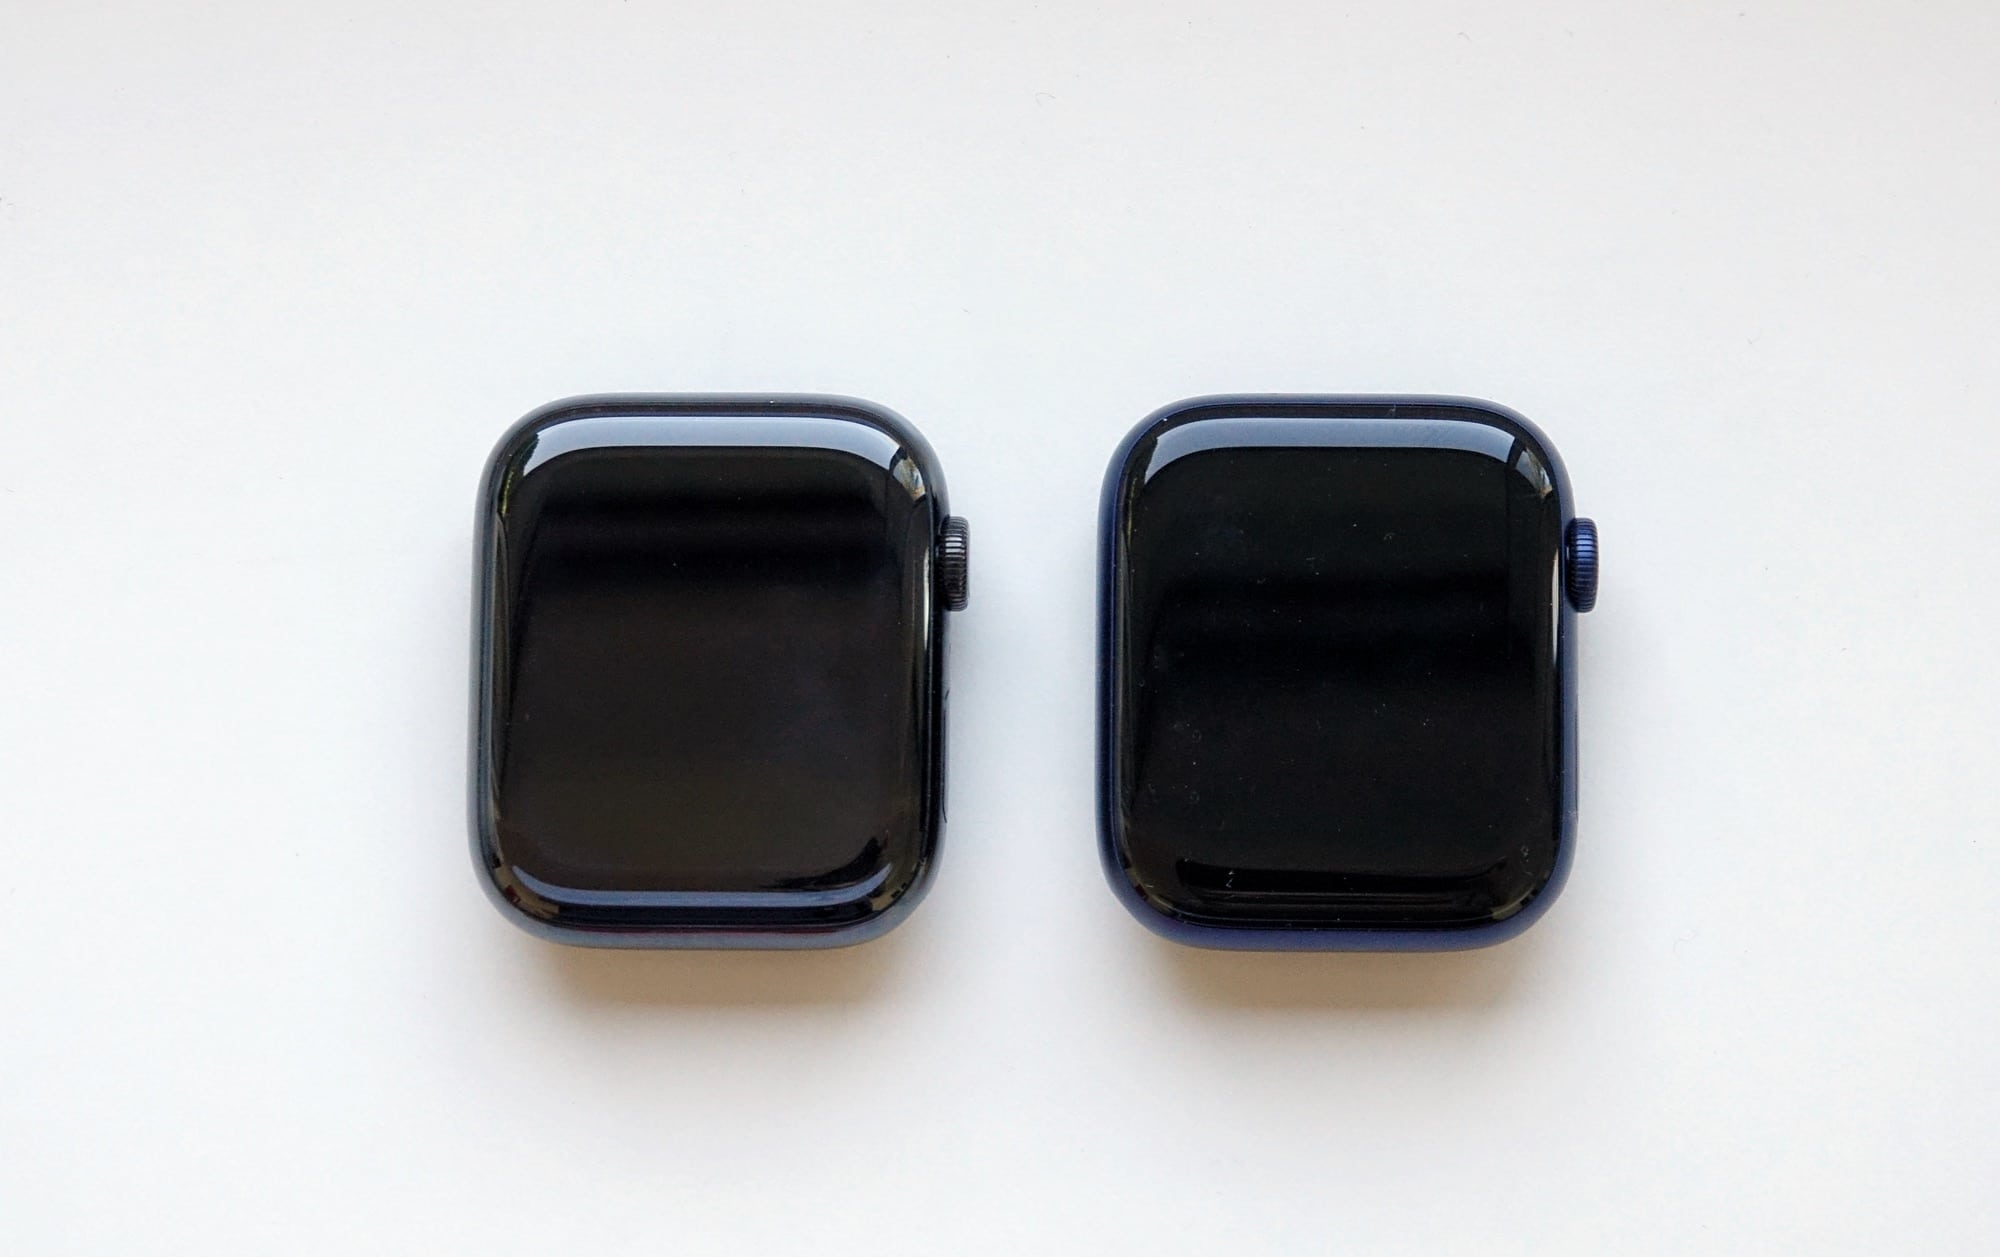 The front of the Apple Watch models: Series 5 (left) and Series 6 (right)